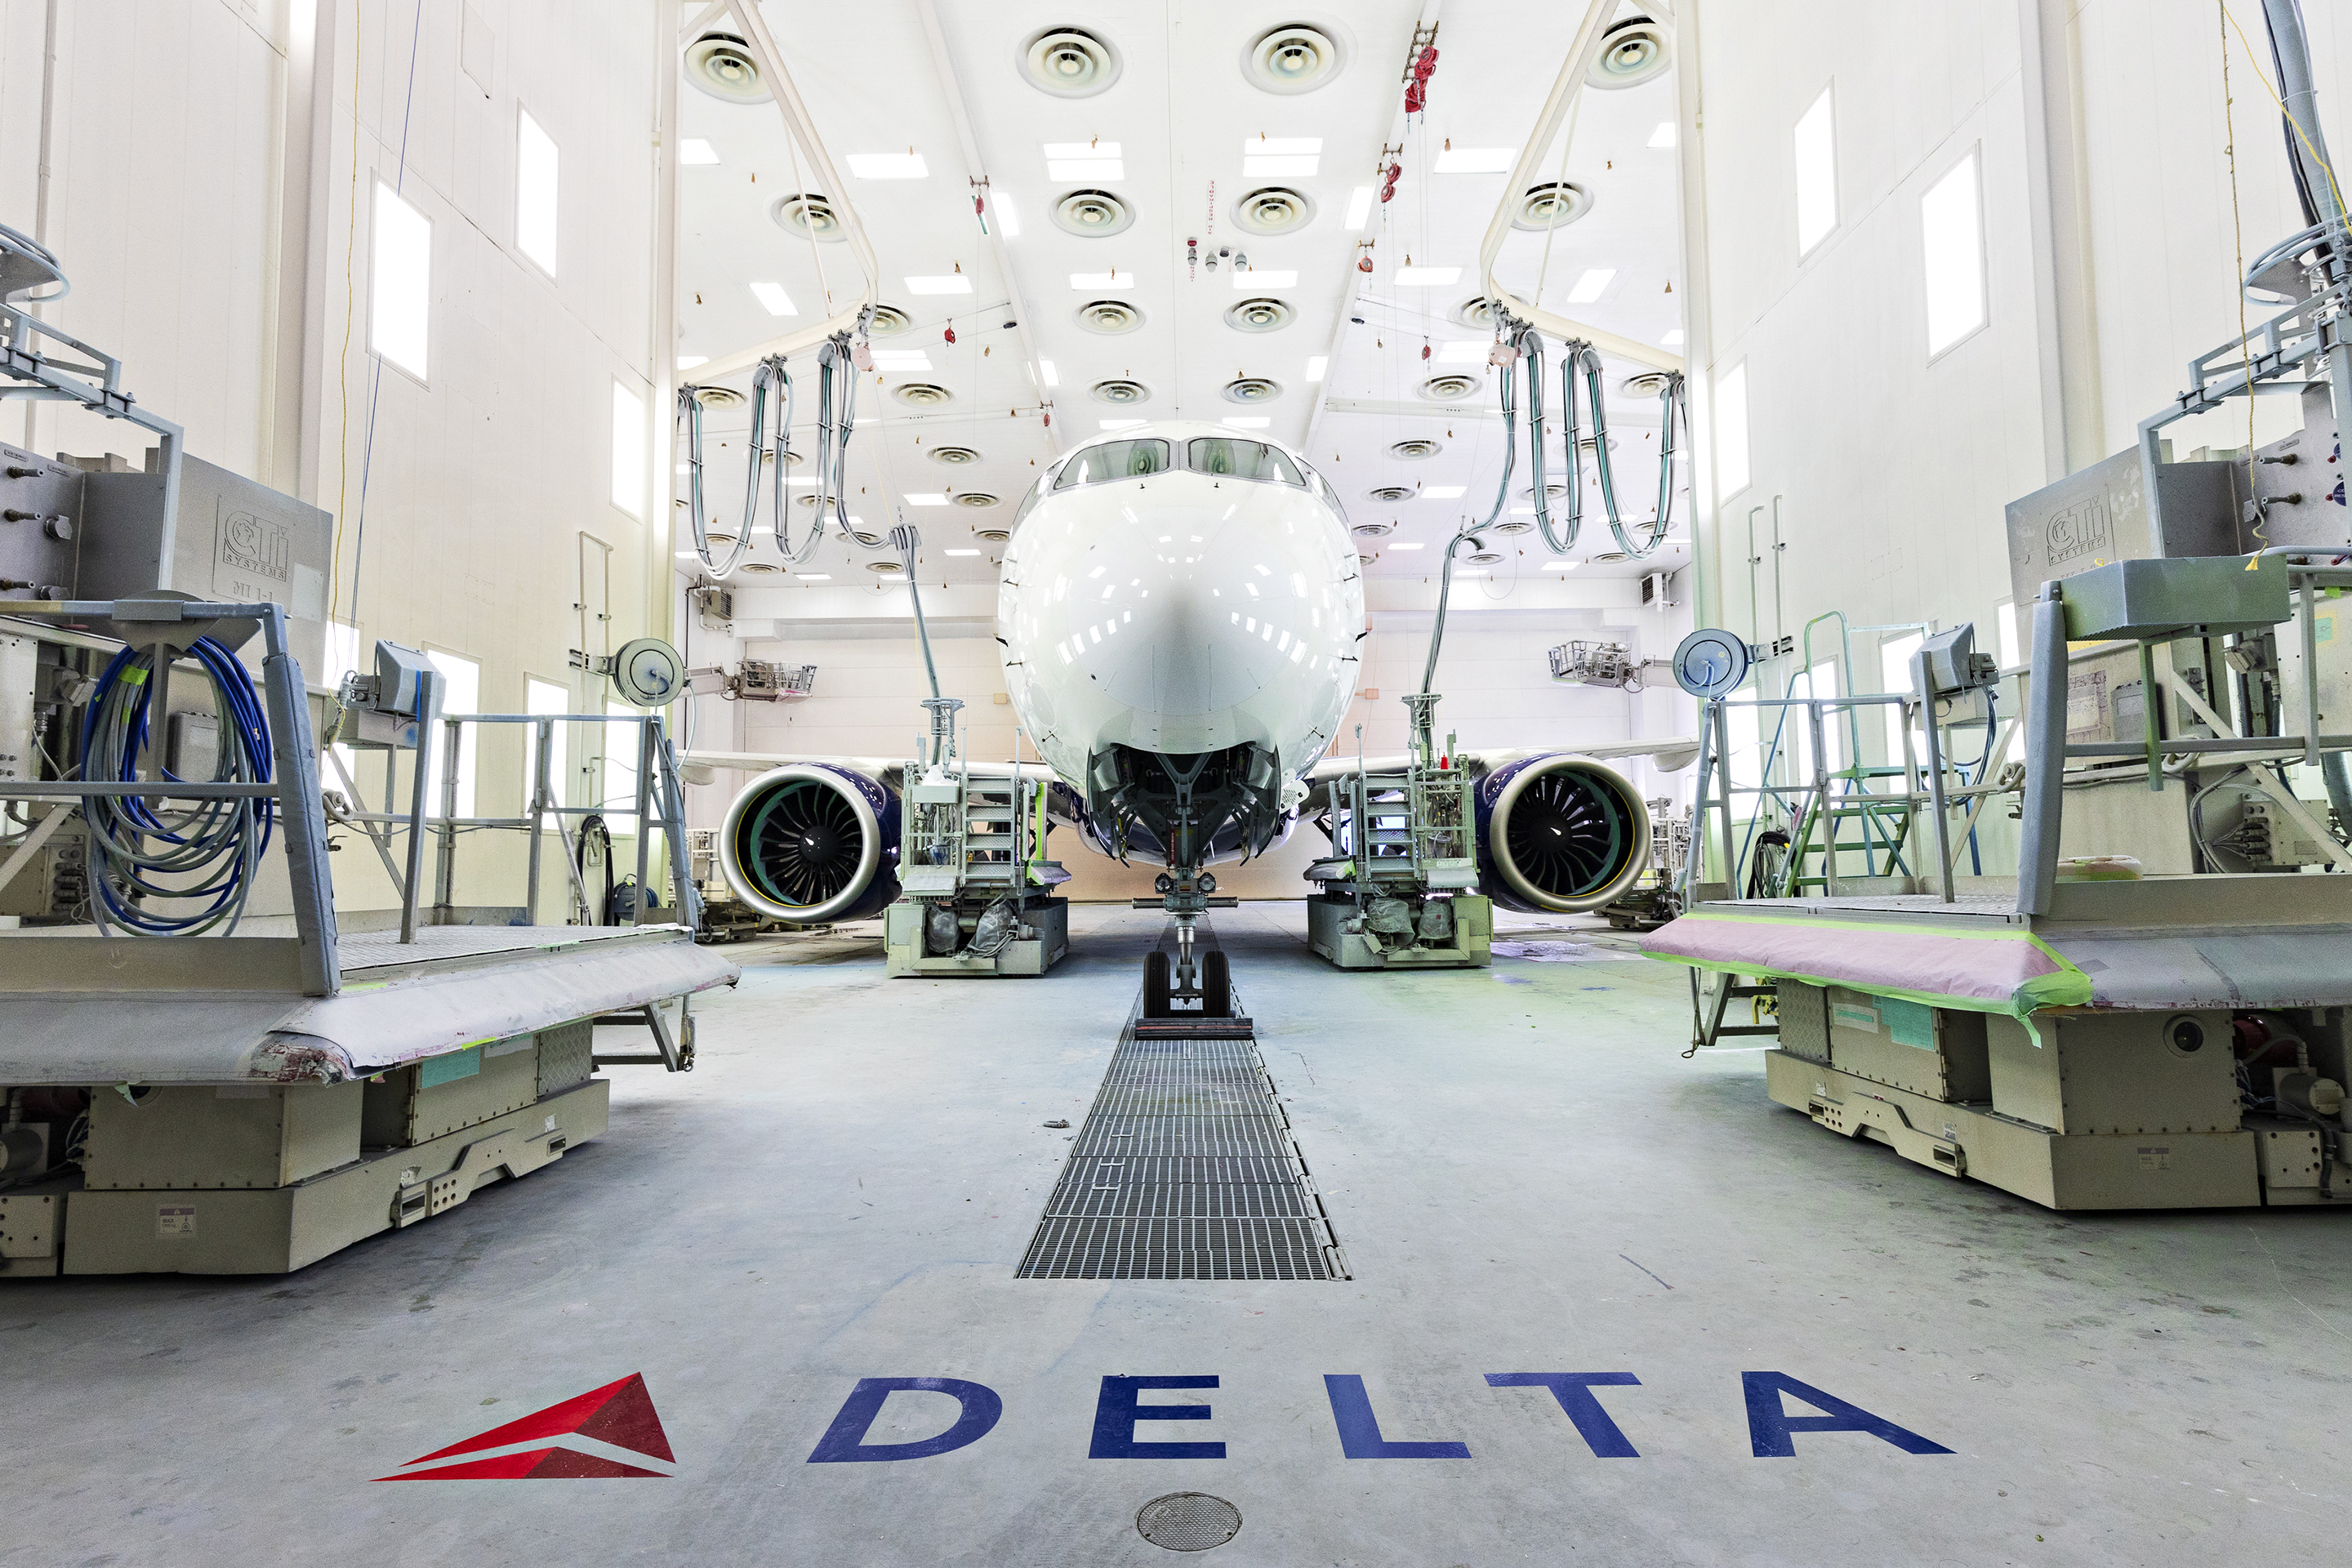 Delta Buckles Up For Turbulence Fortune,Apartment Patio Decorating Ideas On A Budget